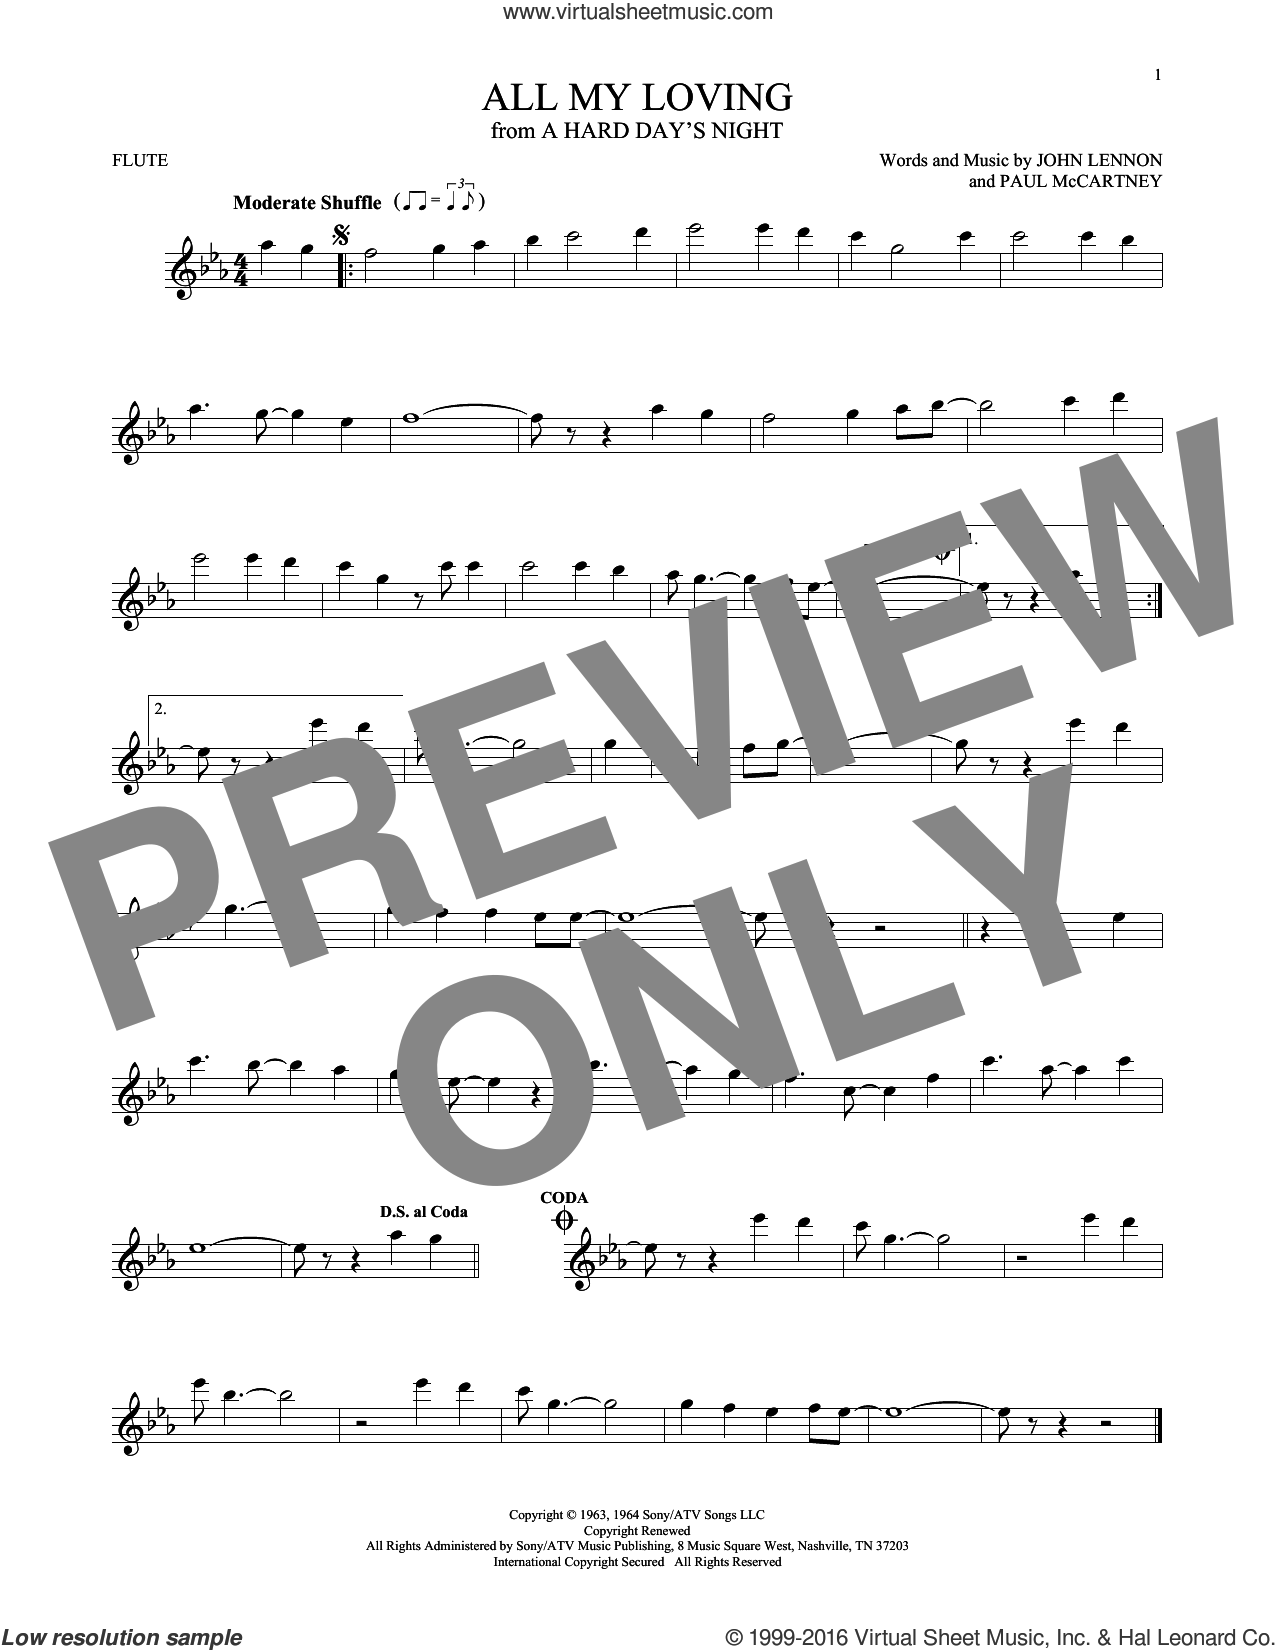 All My Loving sheet music for flute solo by The Beatles, John Lennon and Paul McCartney, intermediate flute. Score Image Preview.